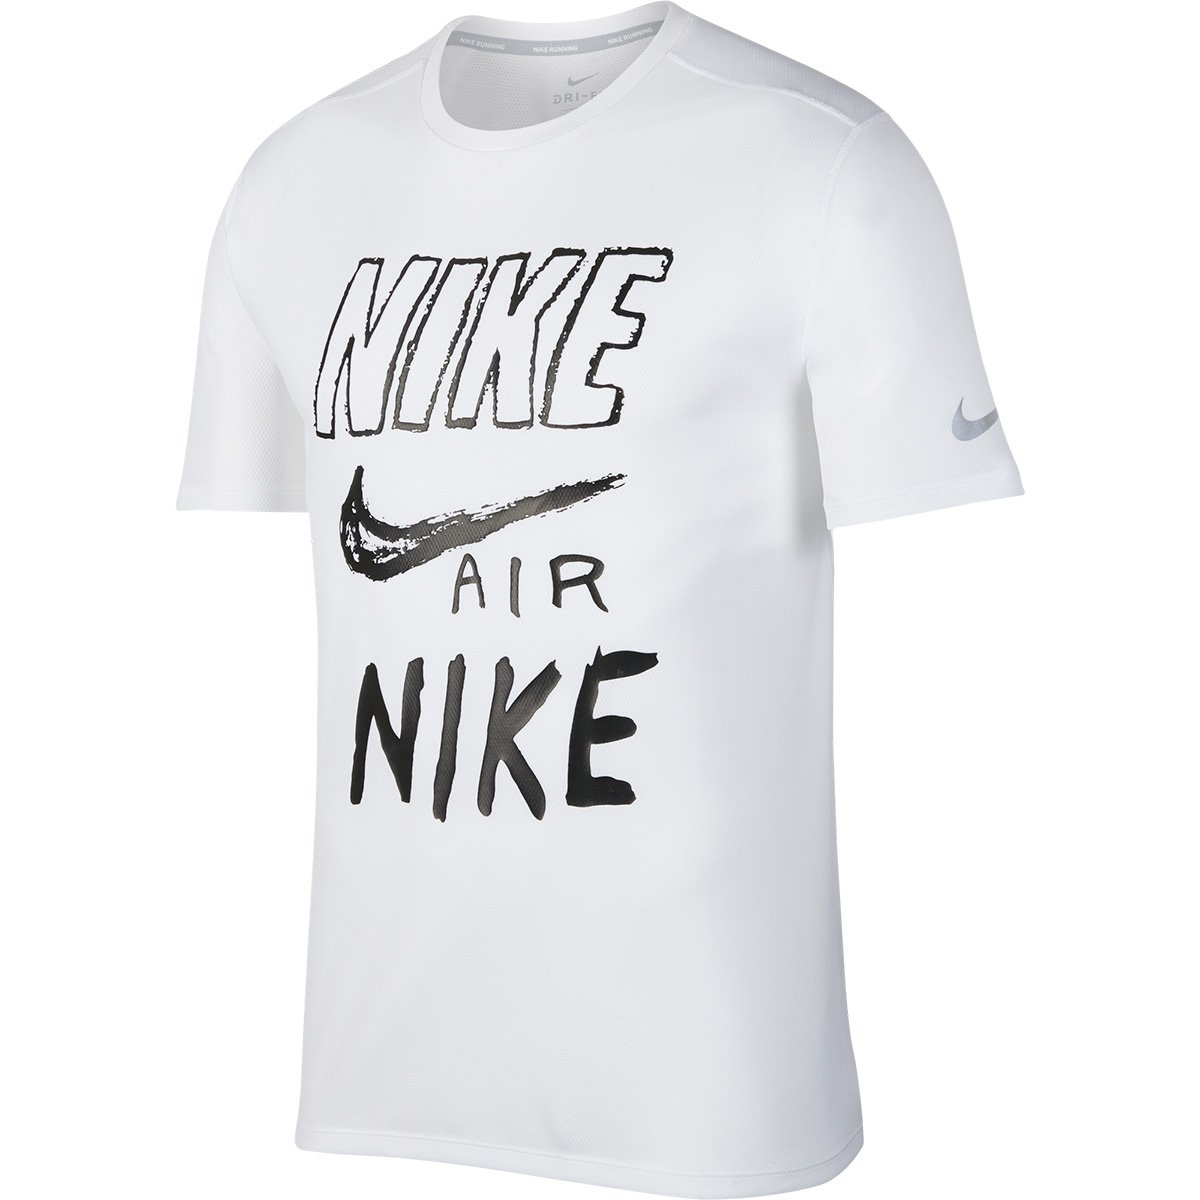 Camiseta Nike DRI FIT Breathe Run Masculina Branco e Preto